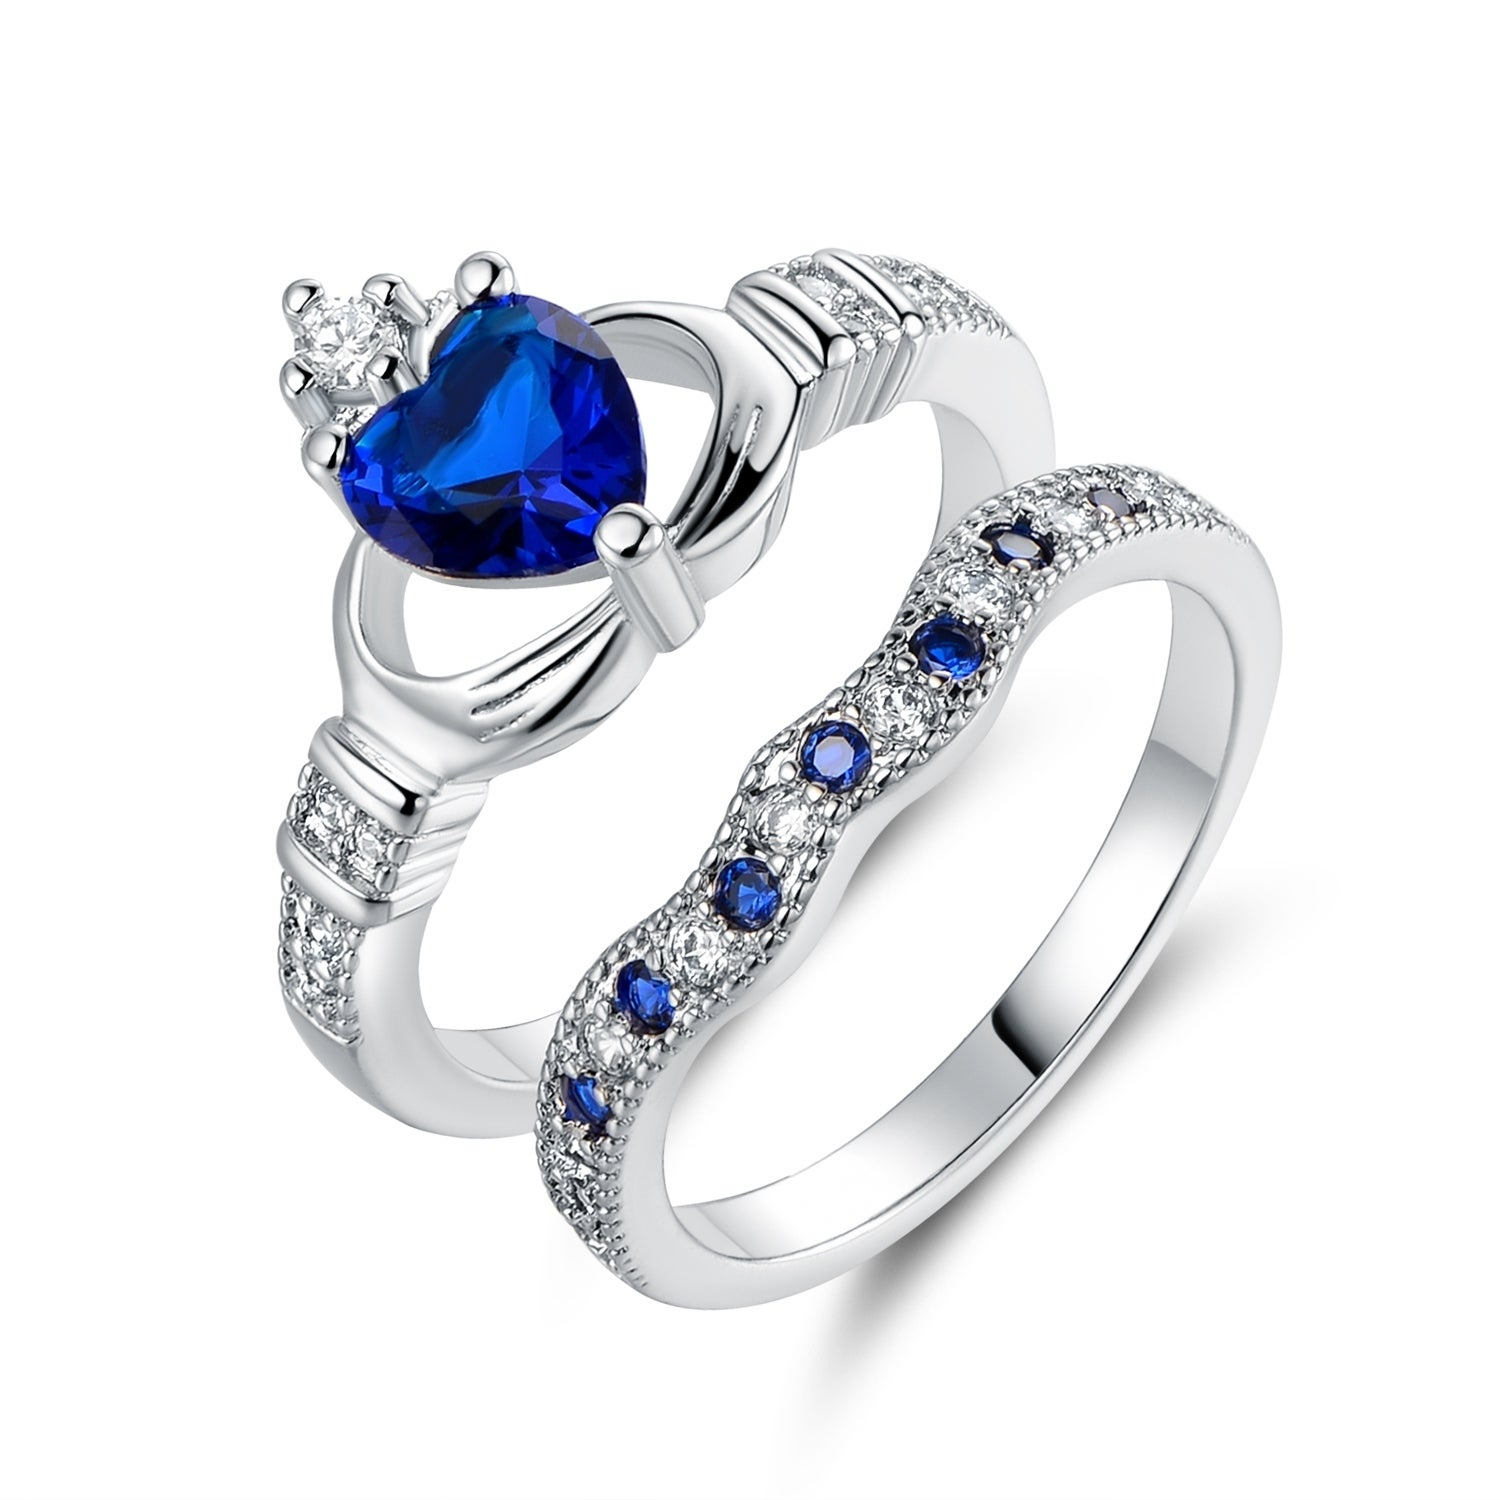 amp lab wedding sapphire blue of with created ring attachment in ctw set engagement carat sets inspirational rings diamond